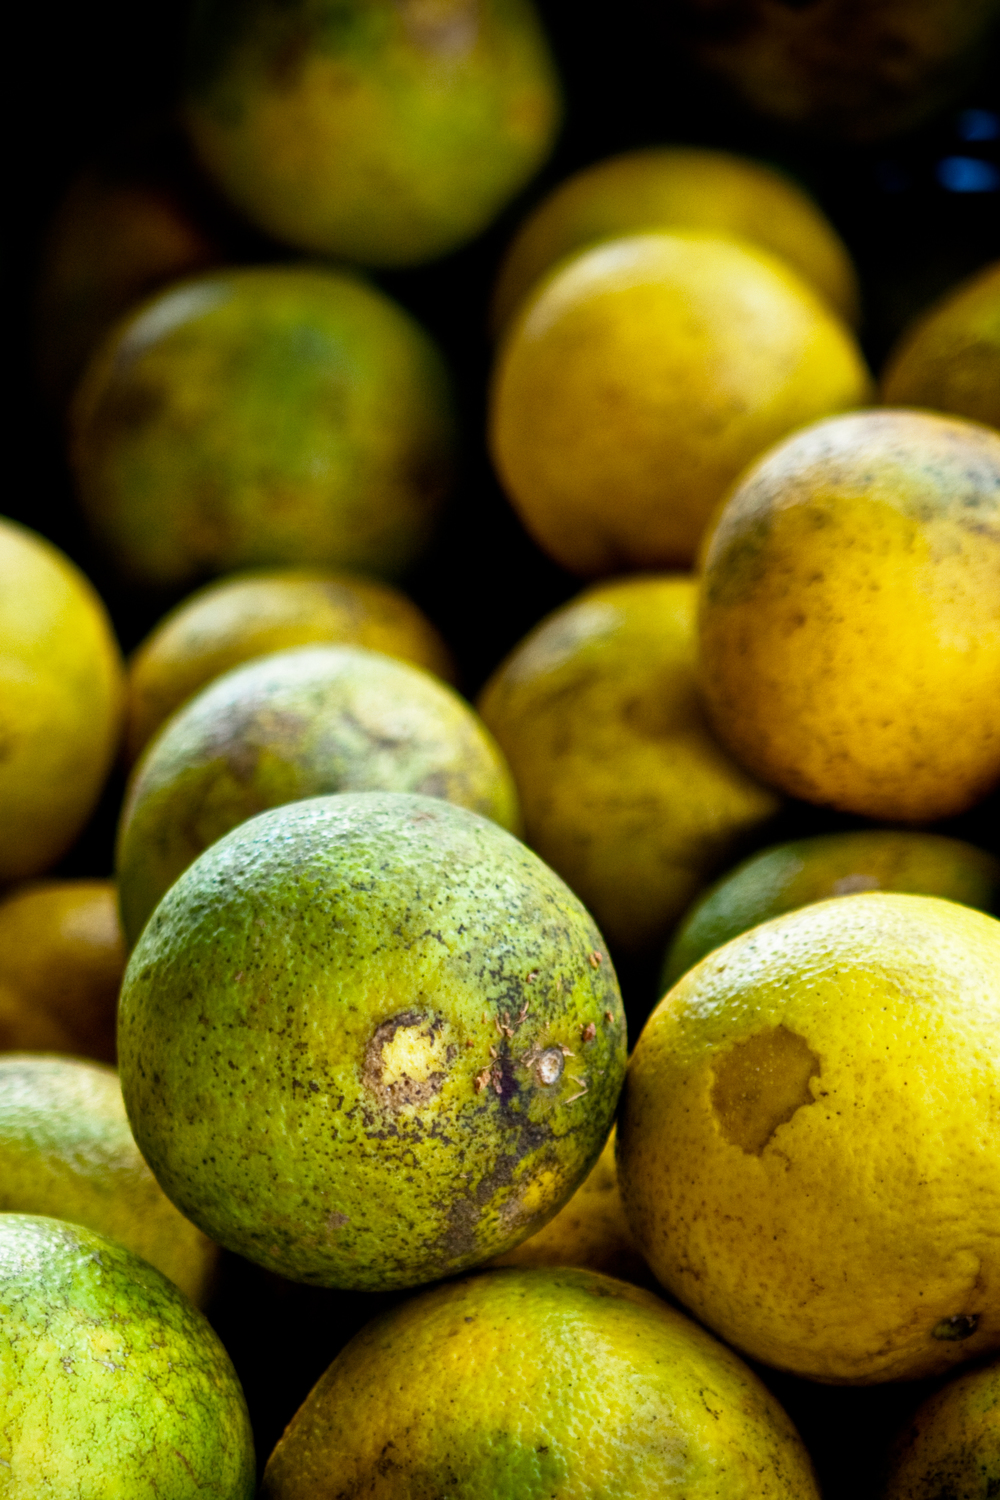 Bundle of yellow and green limes.